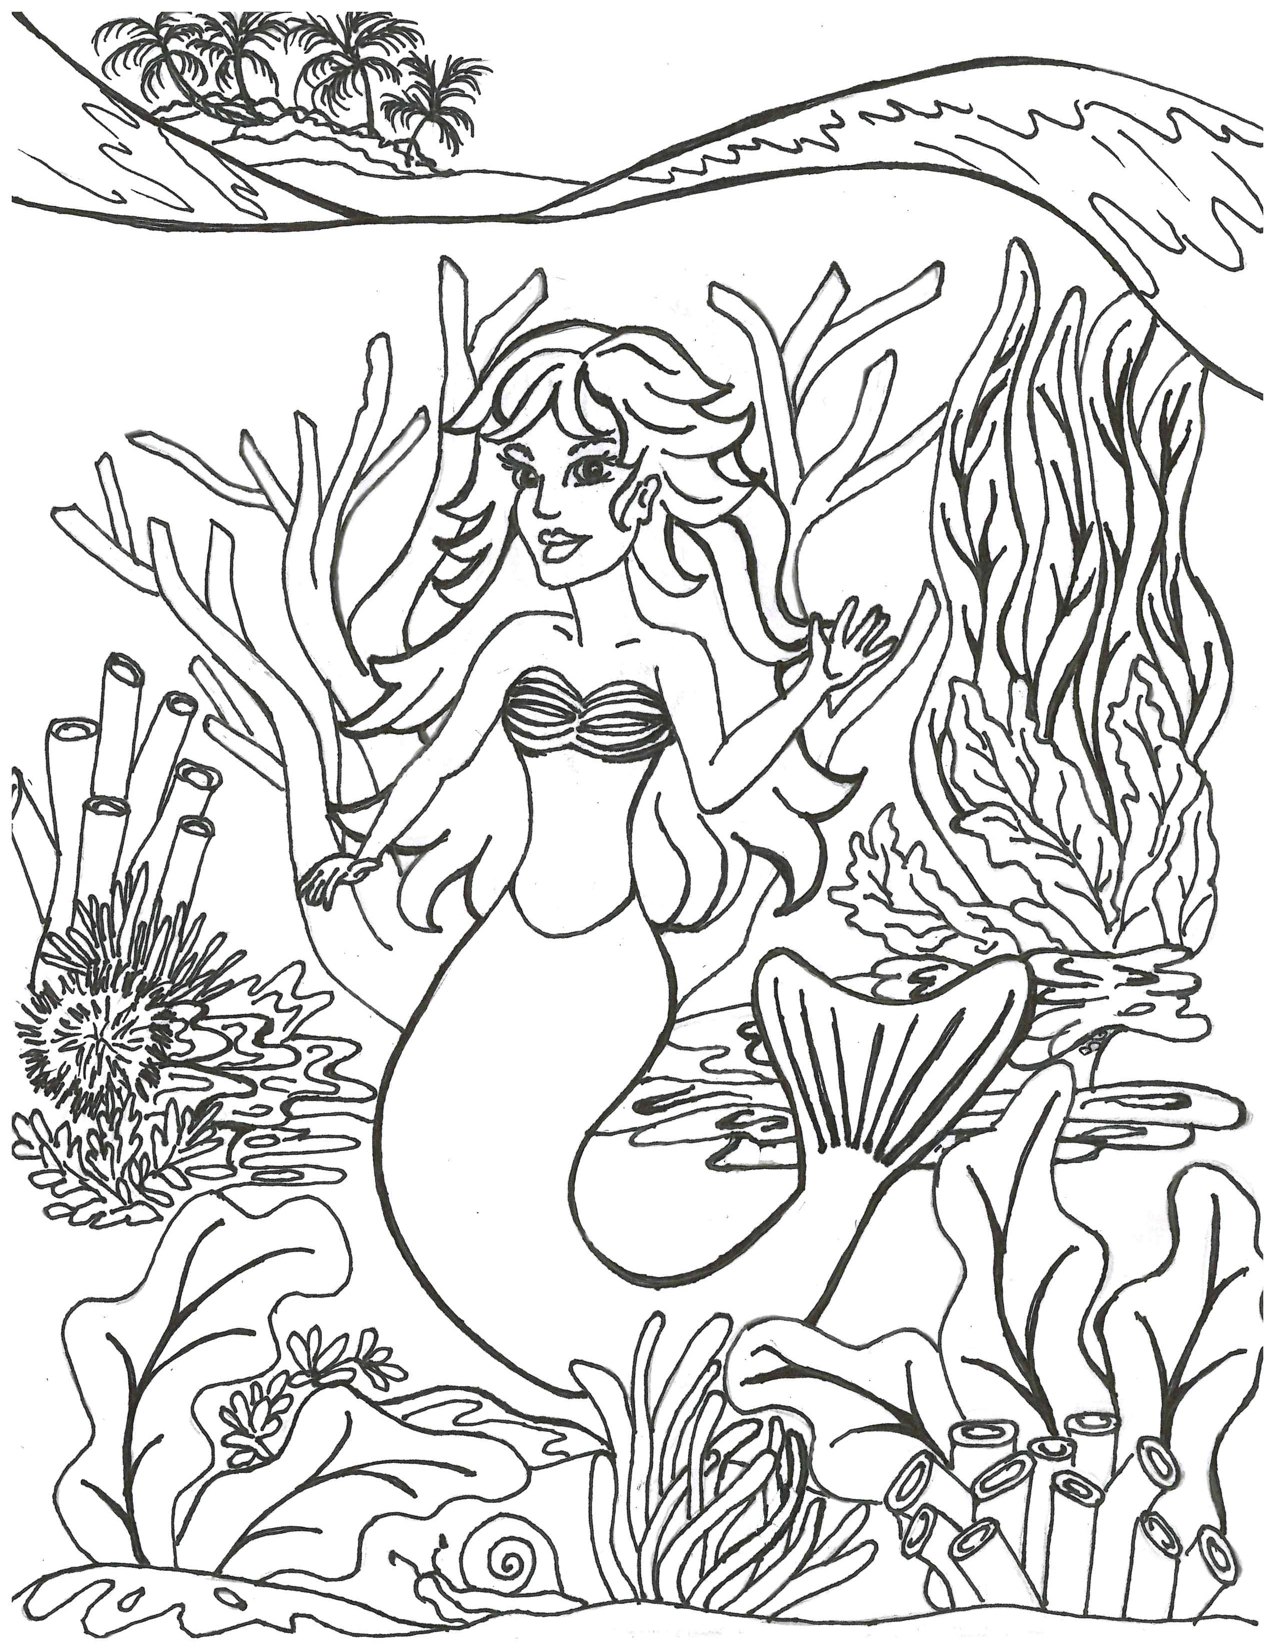 Mermaid with Sea Plants Coloring Page